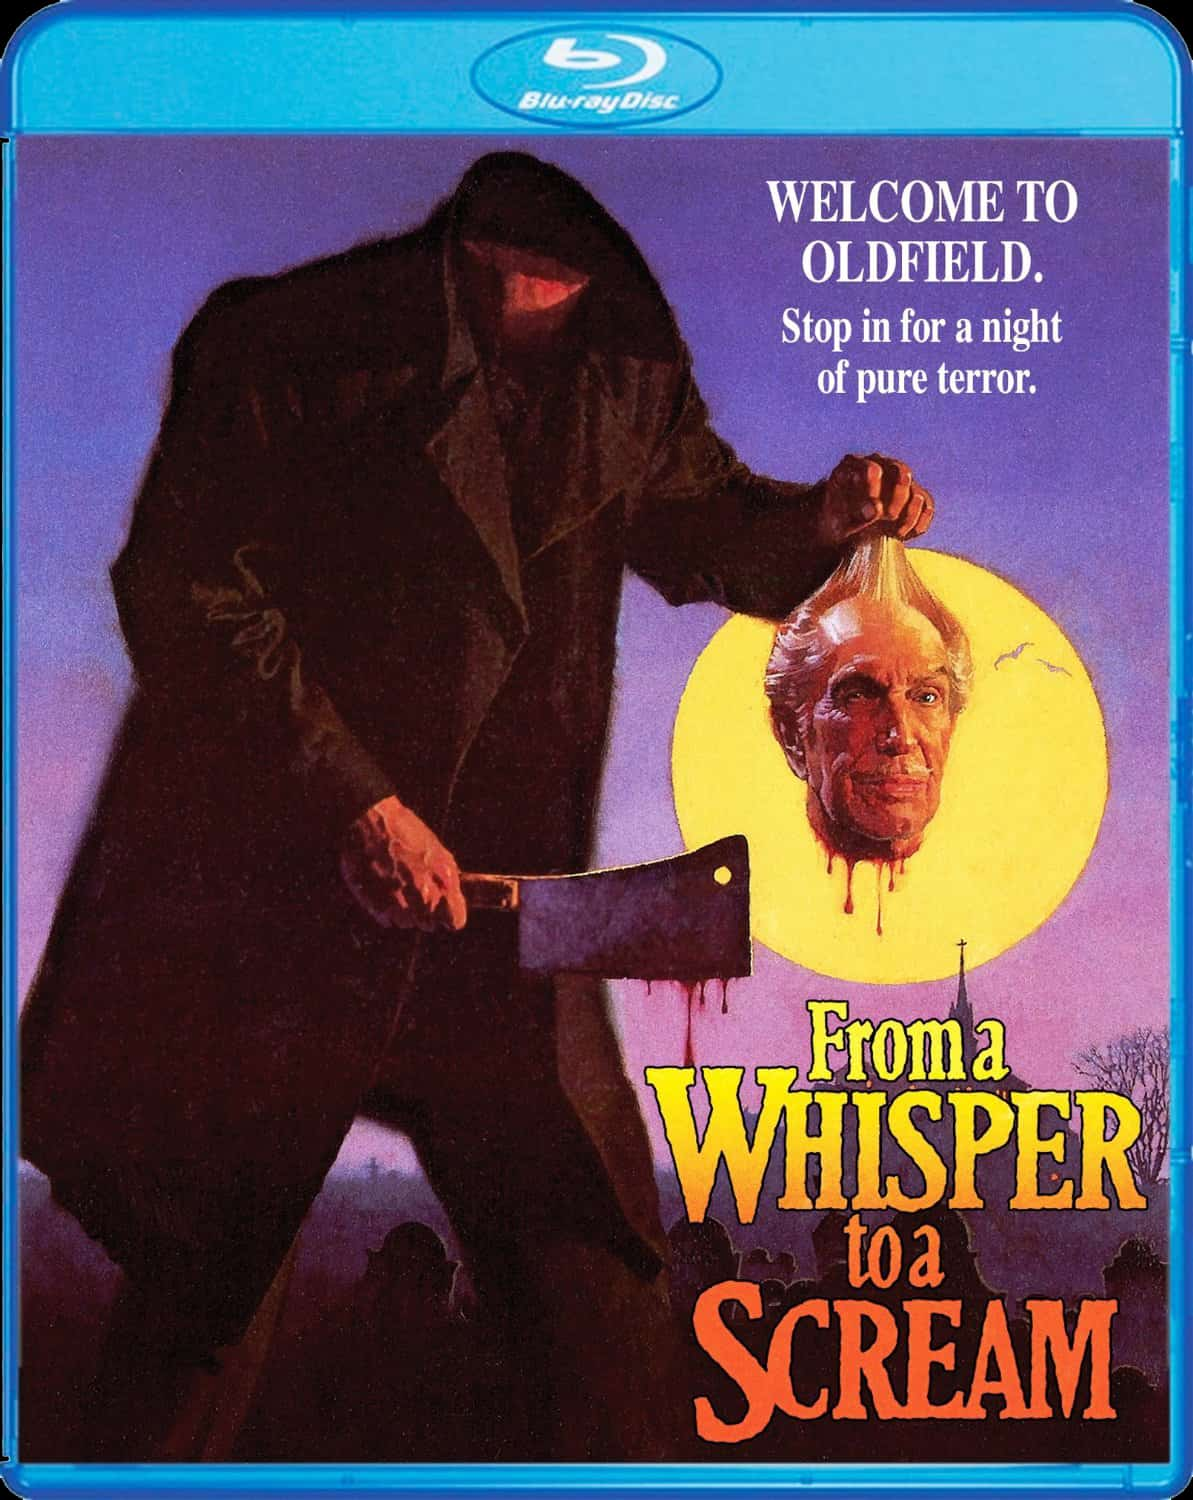 from a whisper to a scream - From a Whisper to a Scream (Blu-ray)